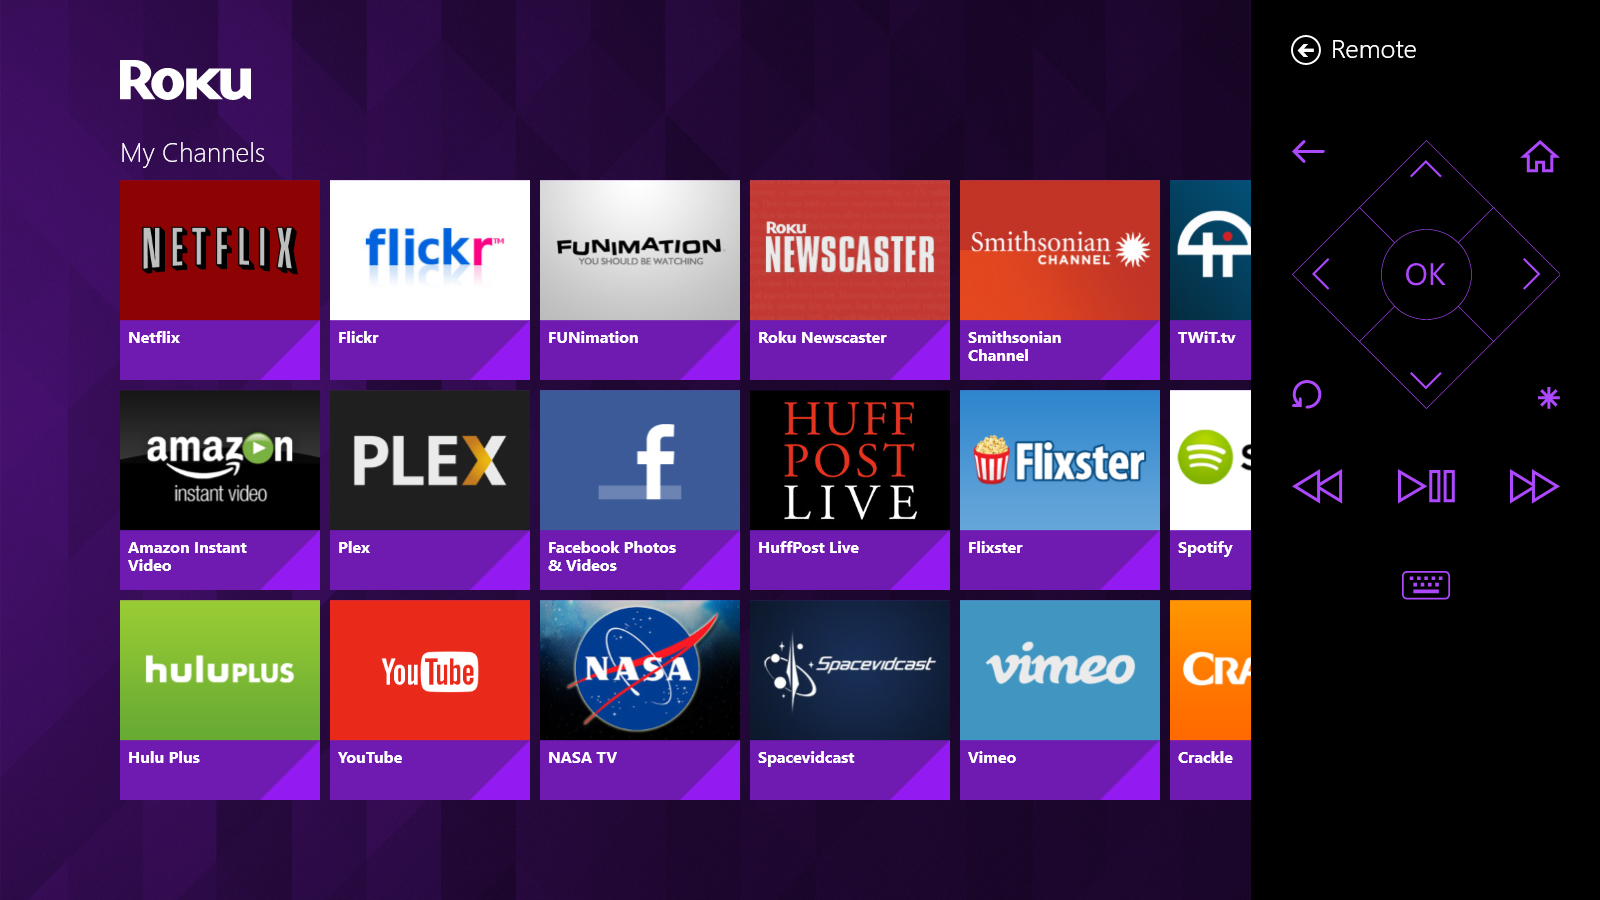 Roku Remote App For Iphone